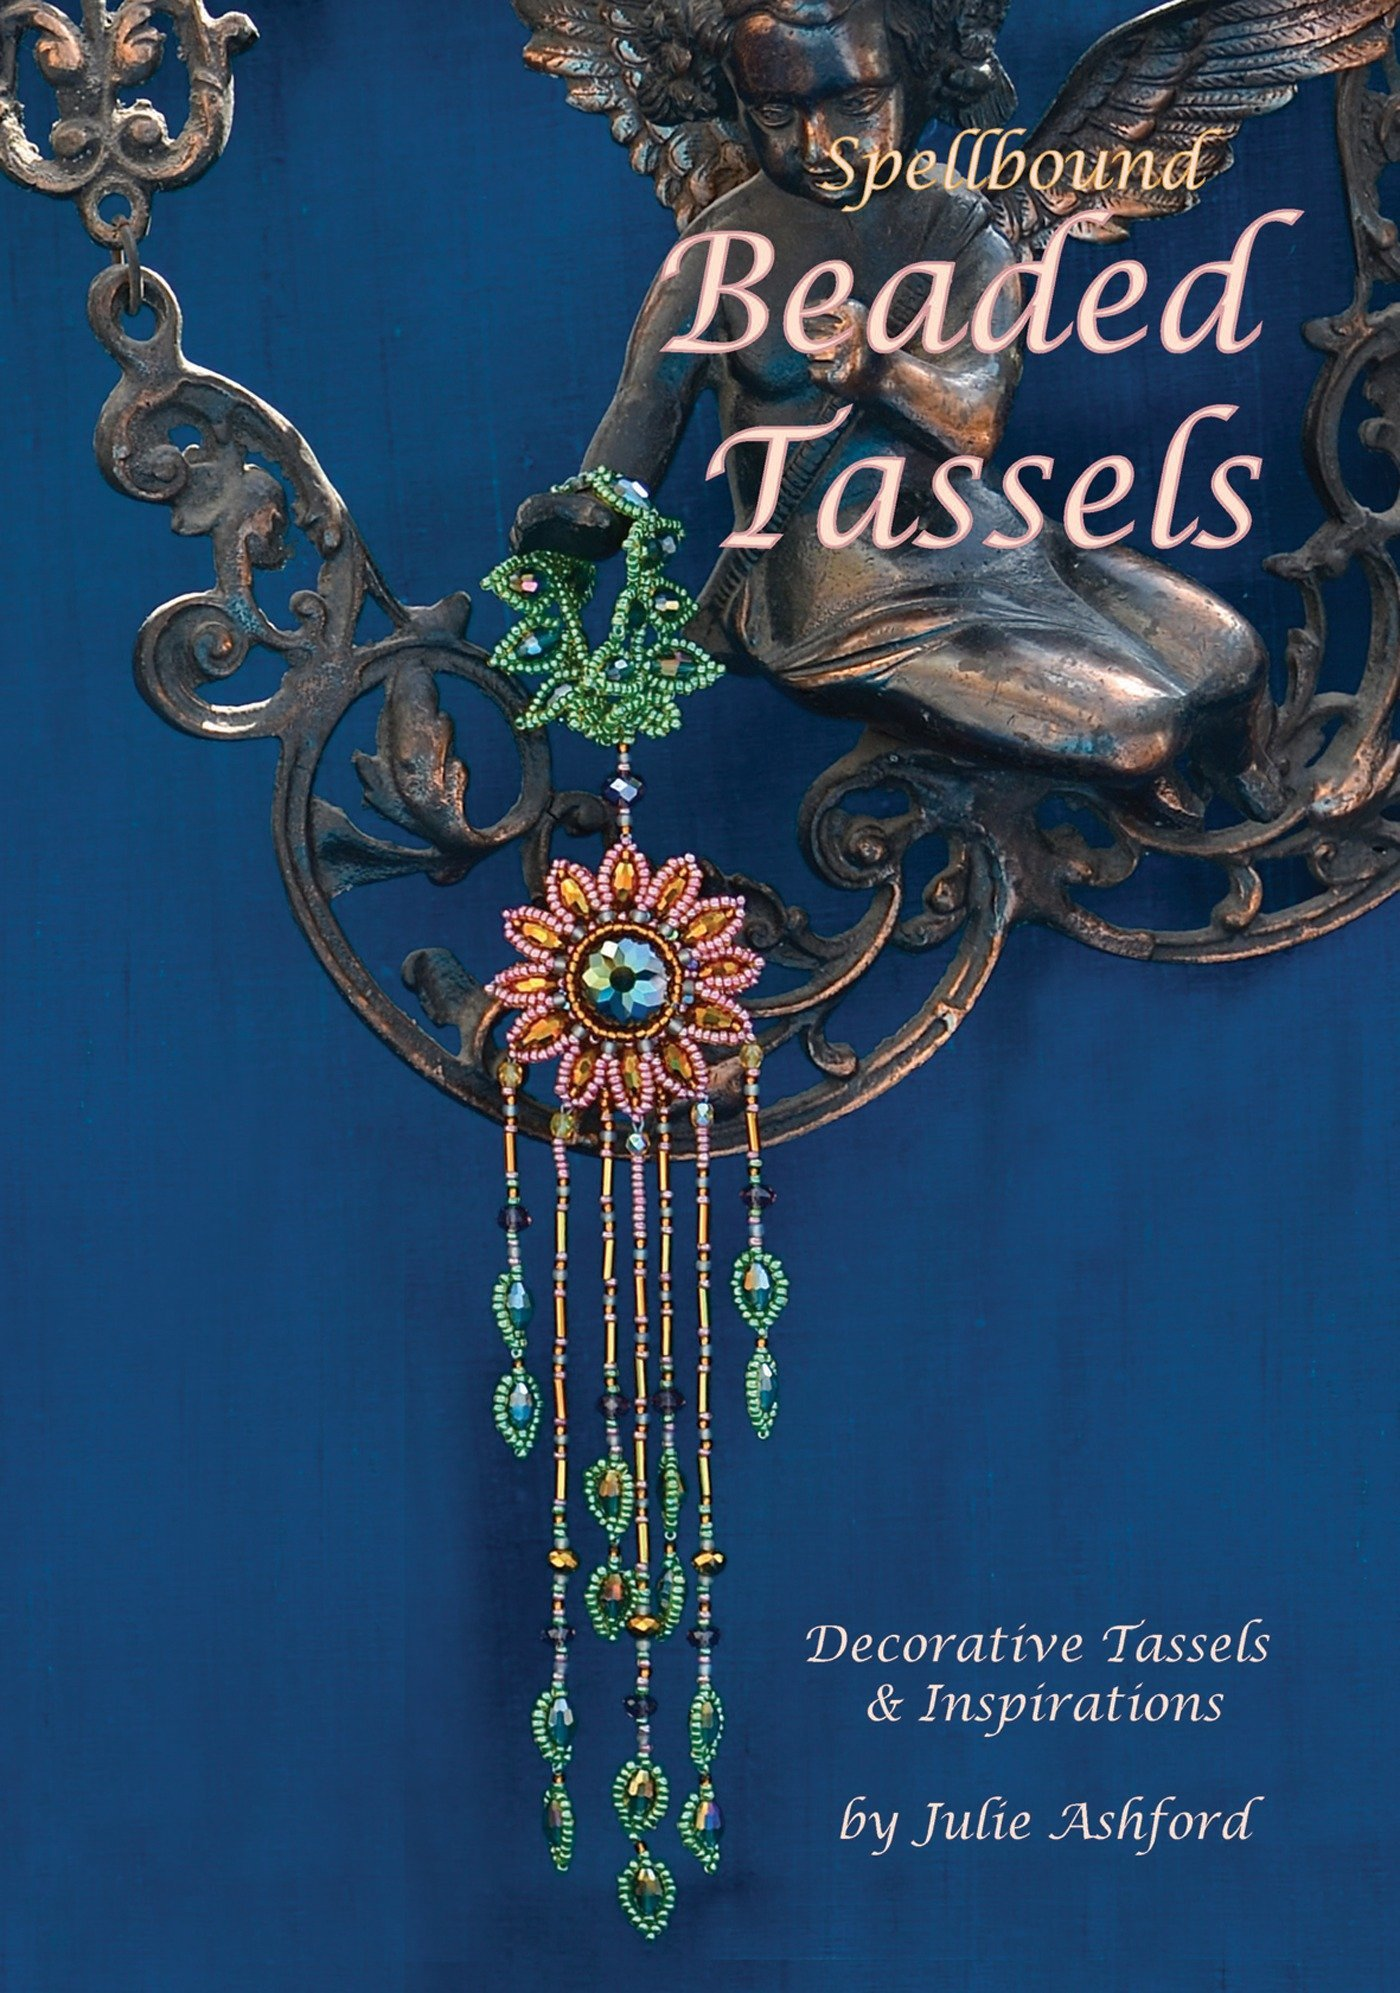 Spellbound Beaded Tassels: Decorative Tassels & Inspirations PDF Text fb2 book